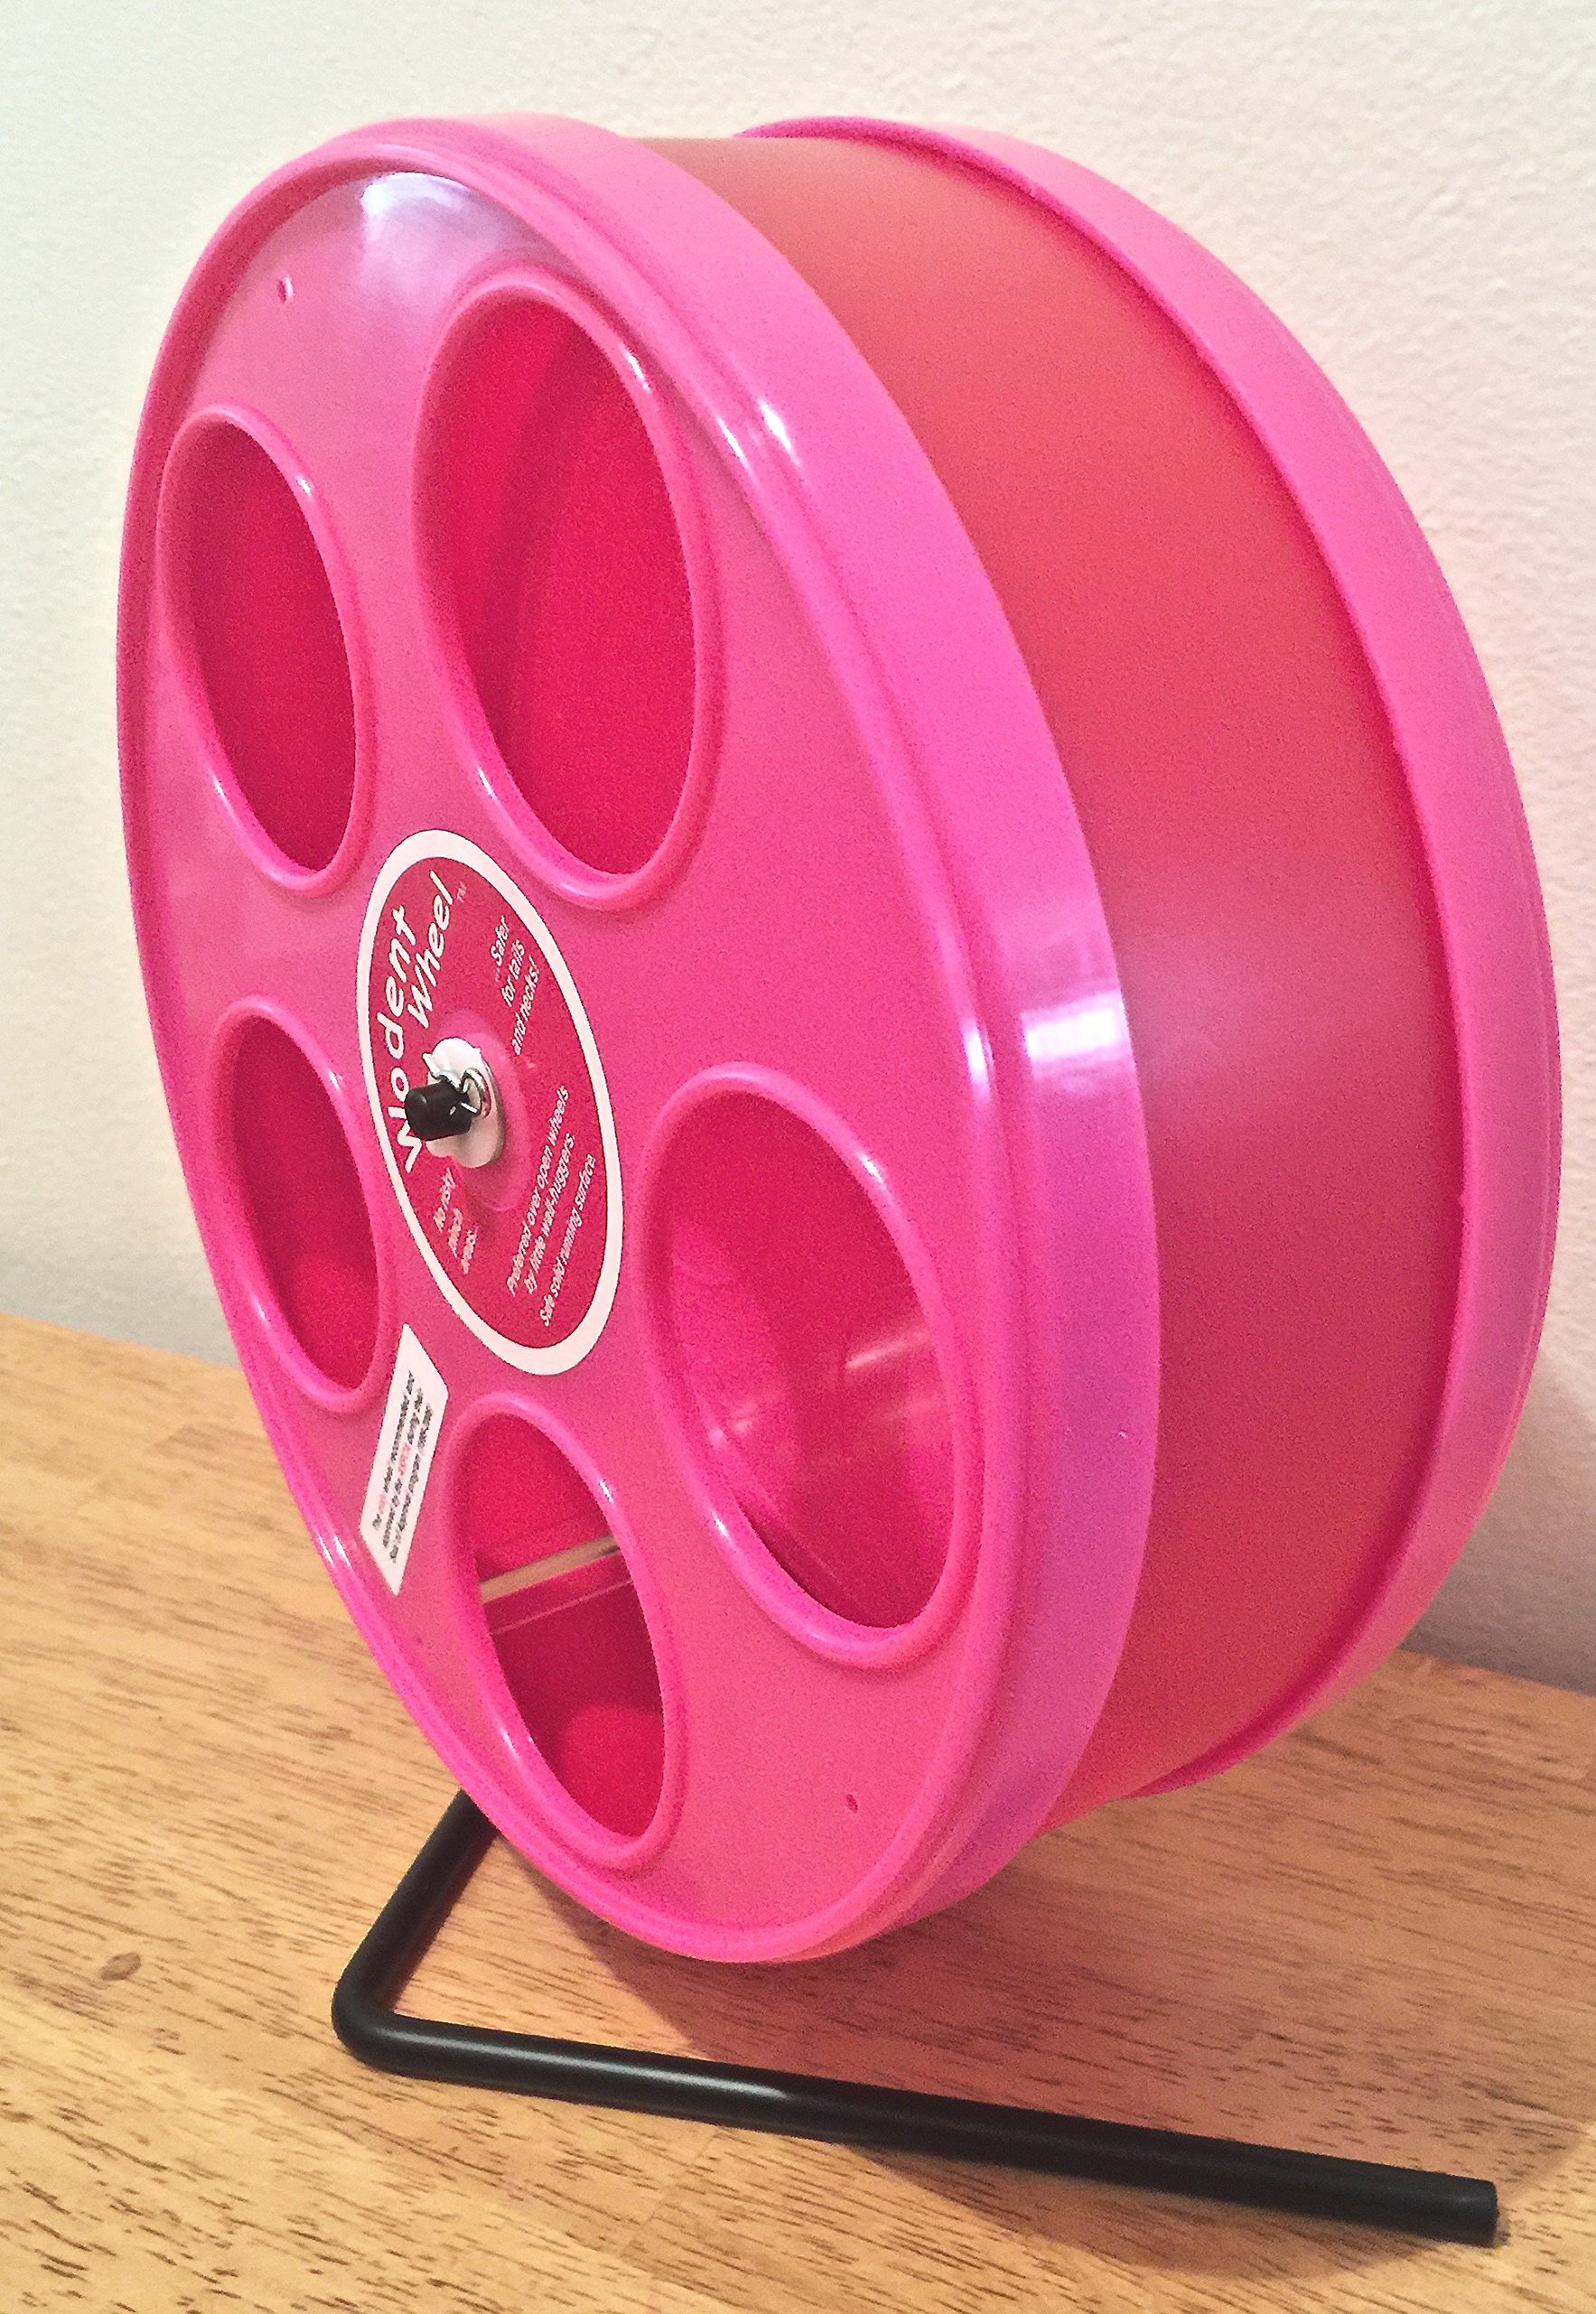 SUGAR GLIDER/HAMSTER 8'' DIAMETER EXERCISE 'WODENT' WHEEL IN ASST. COLORS (RED W. PINK PANELS)